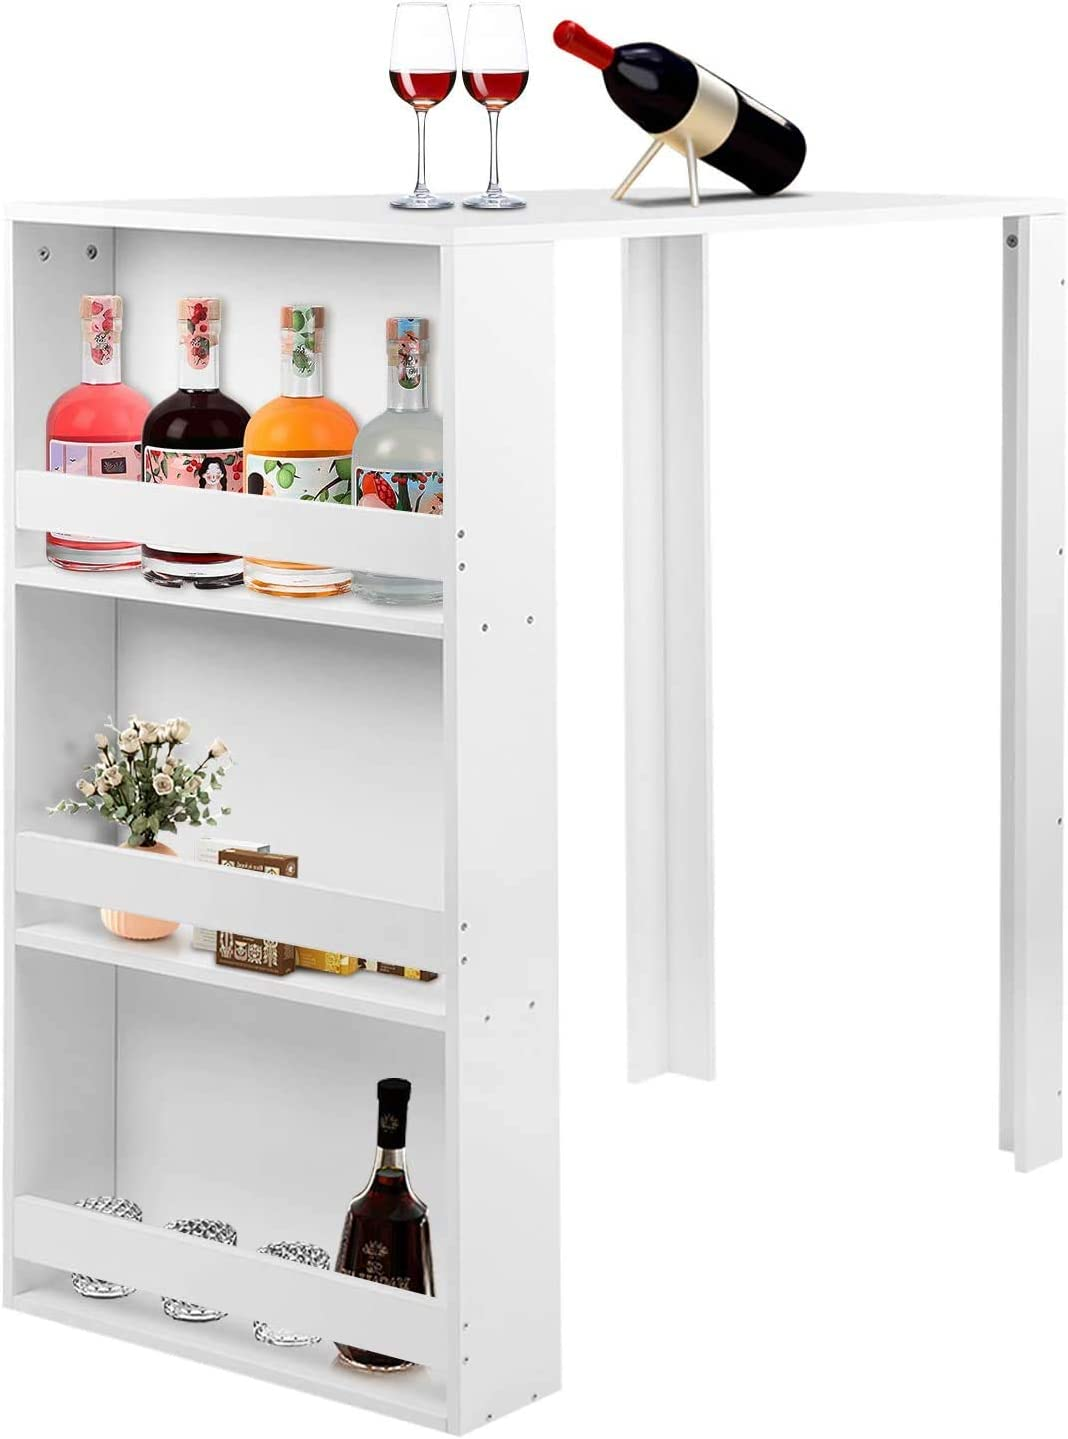 High Bar Table, Bar Table with Storage, Modern Counter Wooden Kitchen High Dining Table with Side Cabinet Storage Shelf for Home, Living Room, Dining Room, Bar, Pub and Small Places